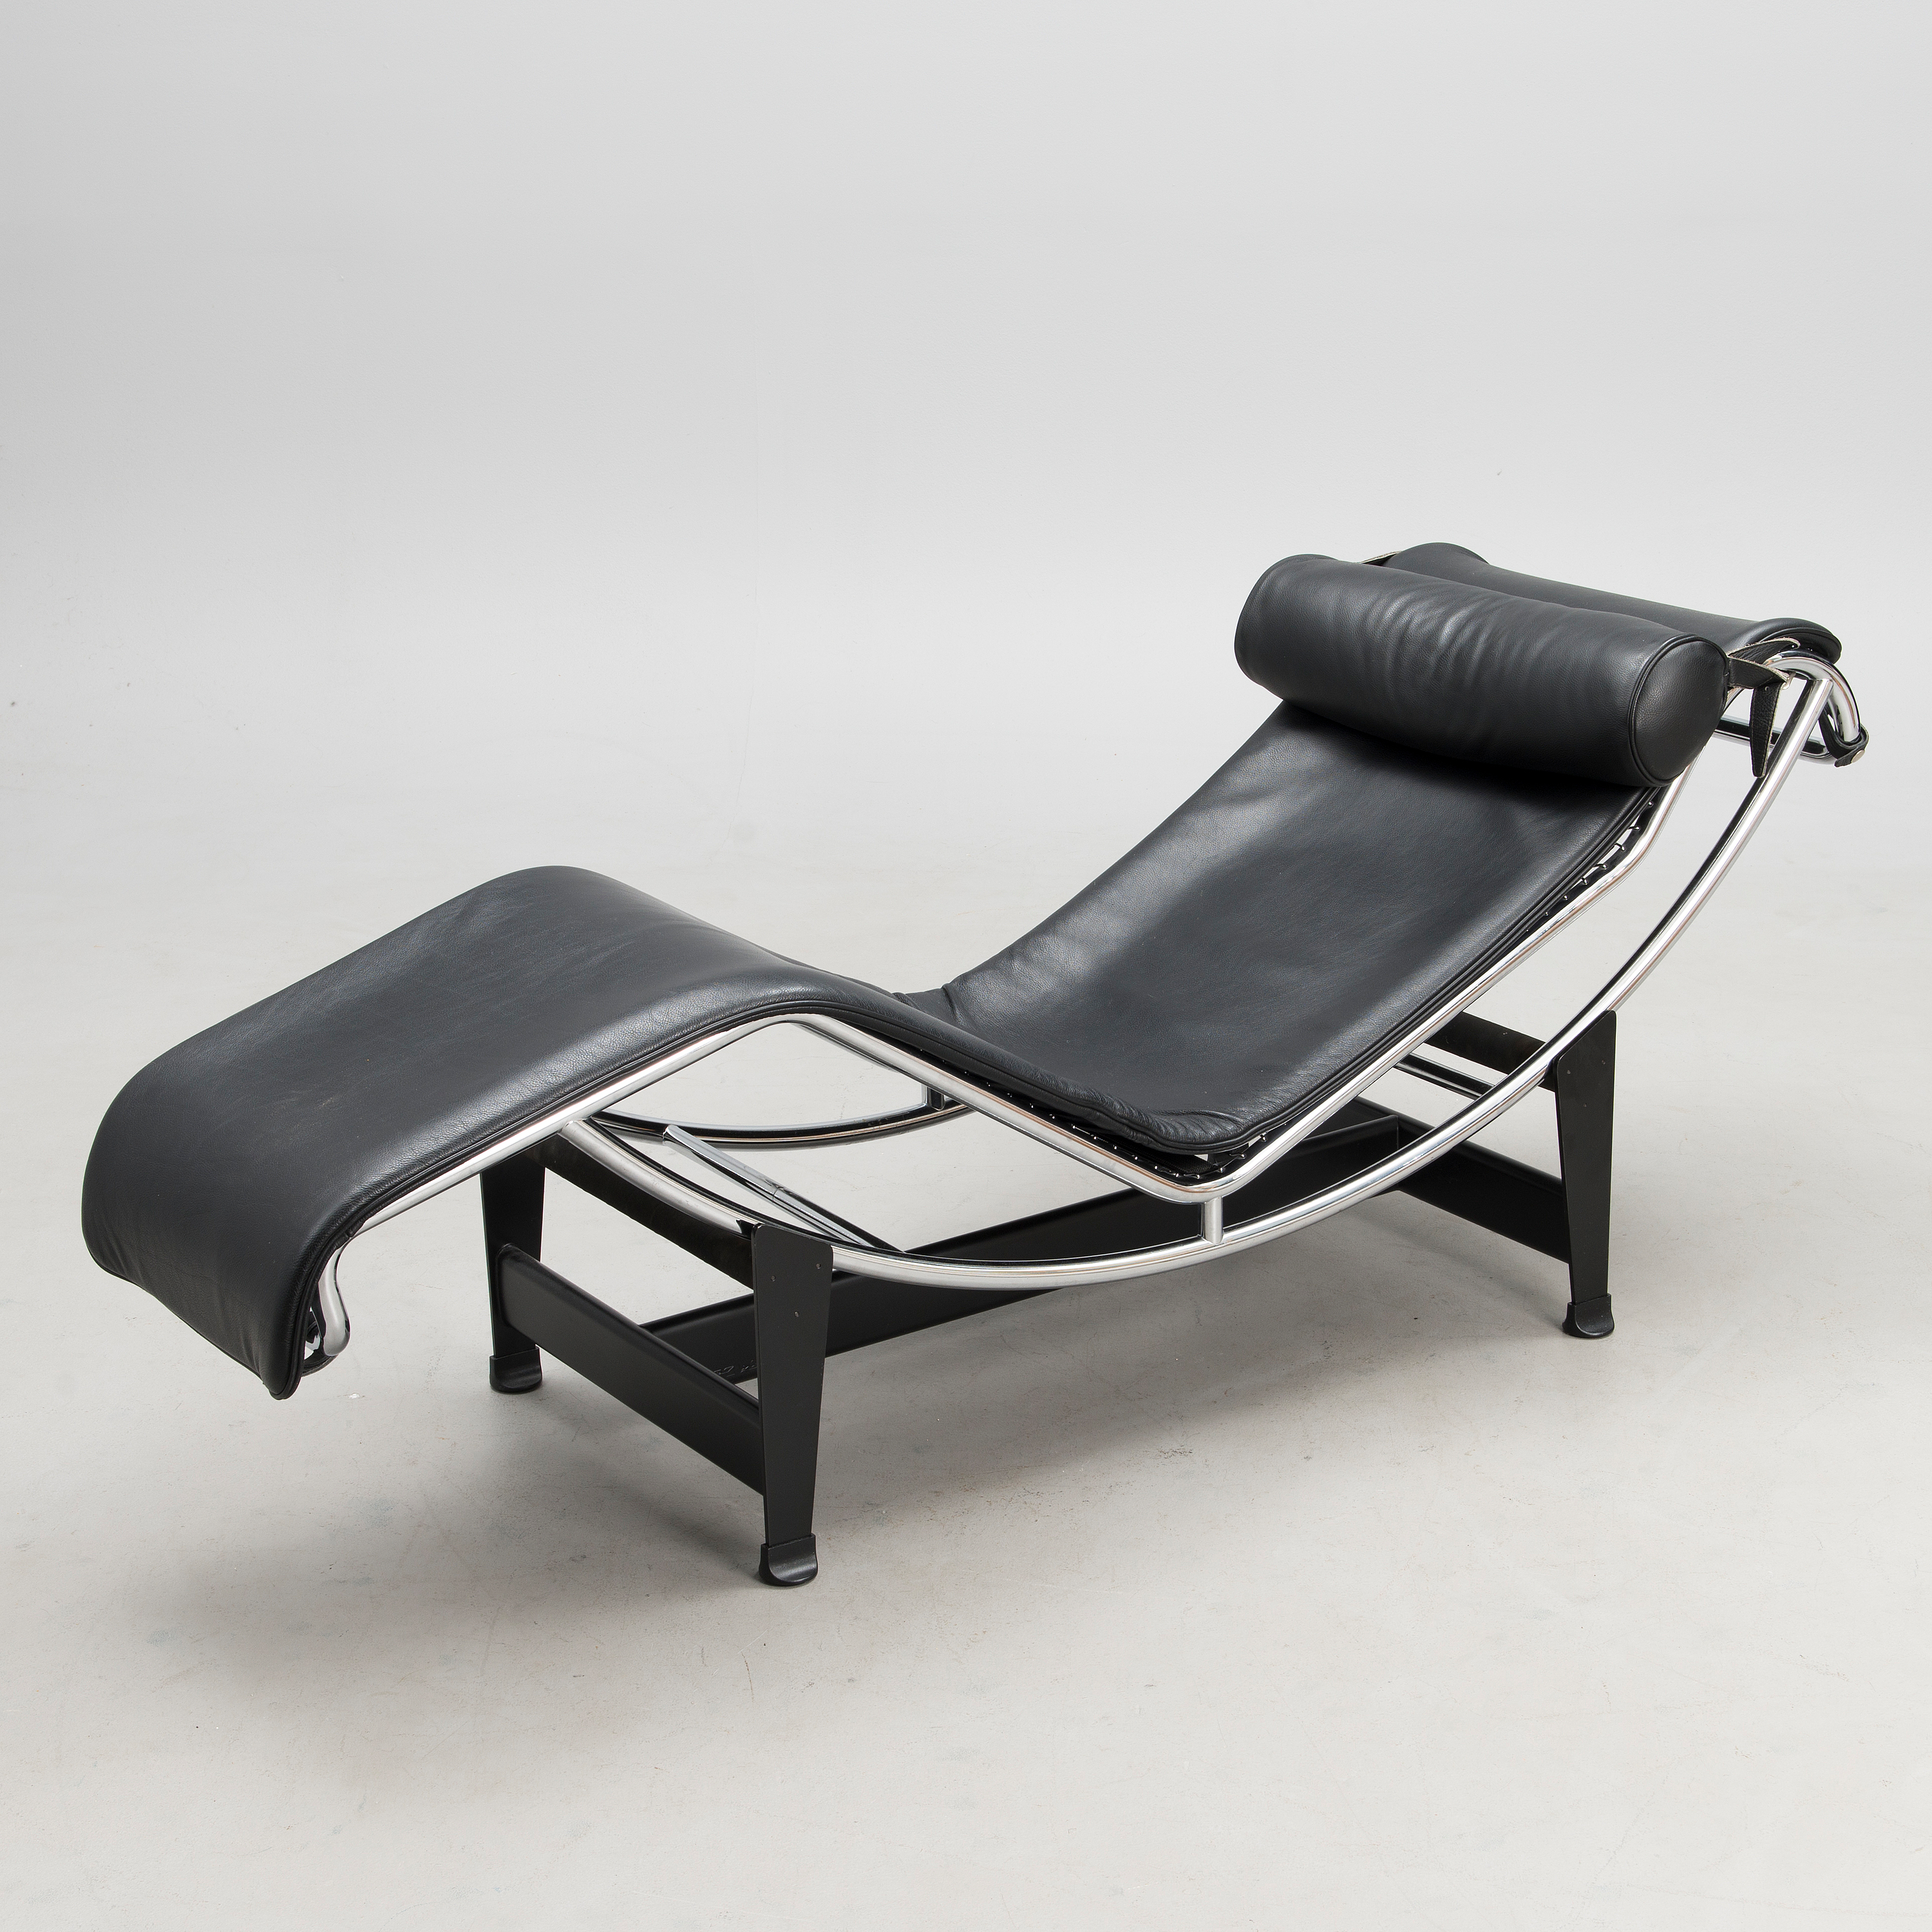 LE CORBUSIER, Le Corbusier, LC4 Chaise Longue, Cina, Italy ... on chaise sofa sleeper, chaise recliner chair, chaise furniture,